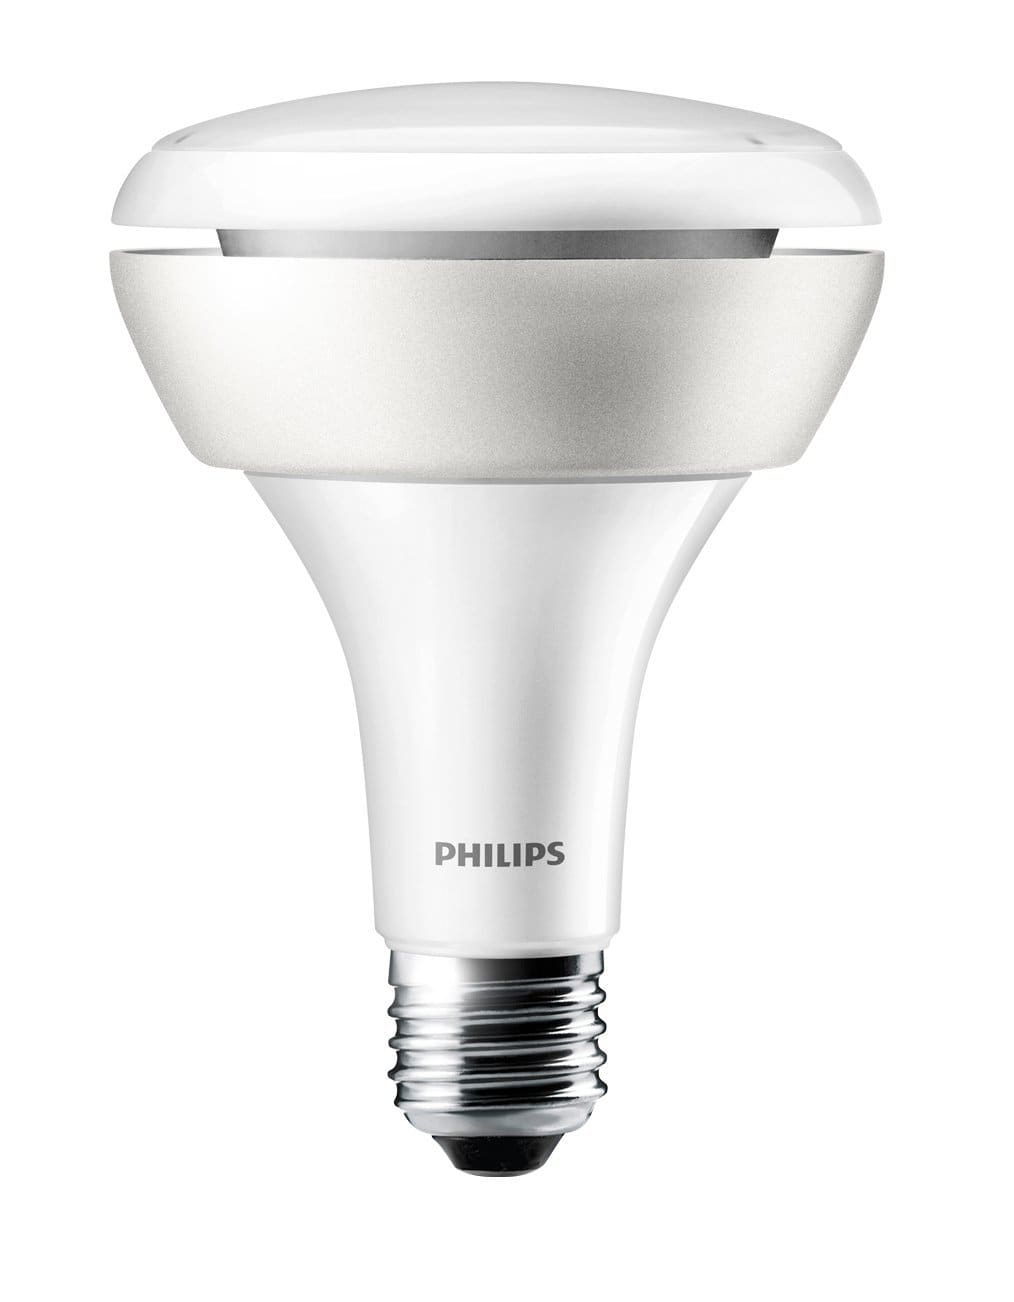 Philips Hue Bulbs - Amazon Promotion